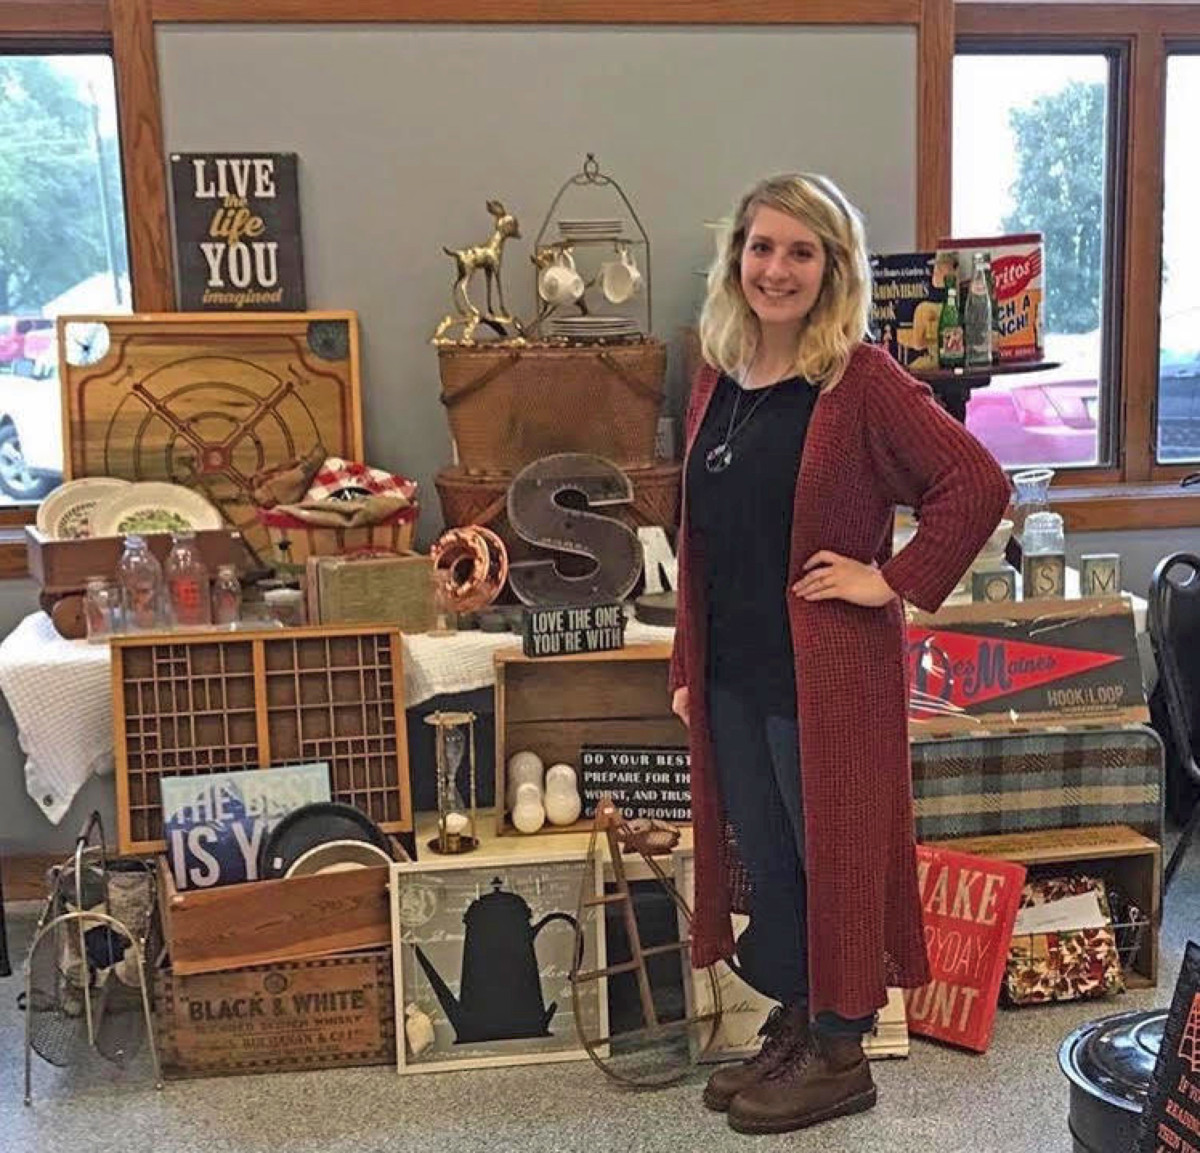 Brandi Rockwell, 28, first became interested in vintage fare through her grandmother, but also liked bargain hunting at thrift stores.